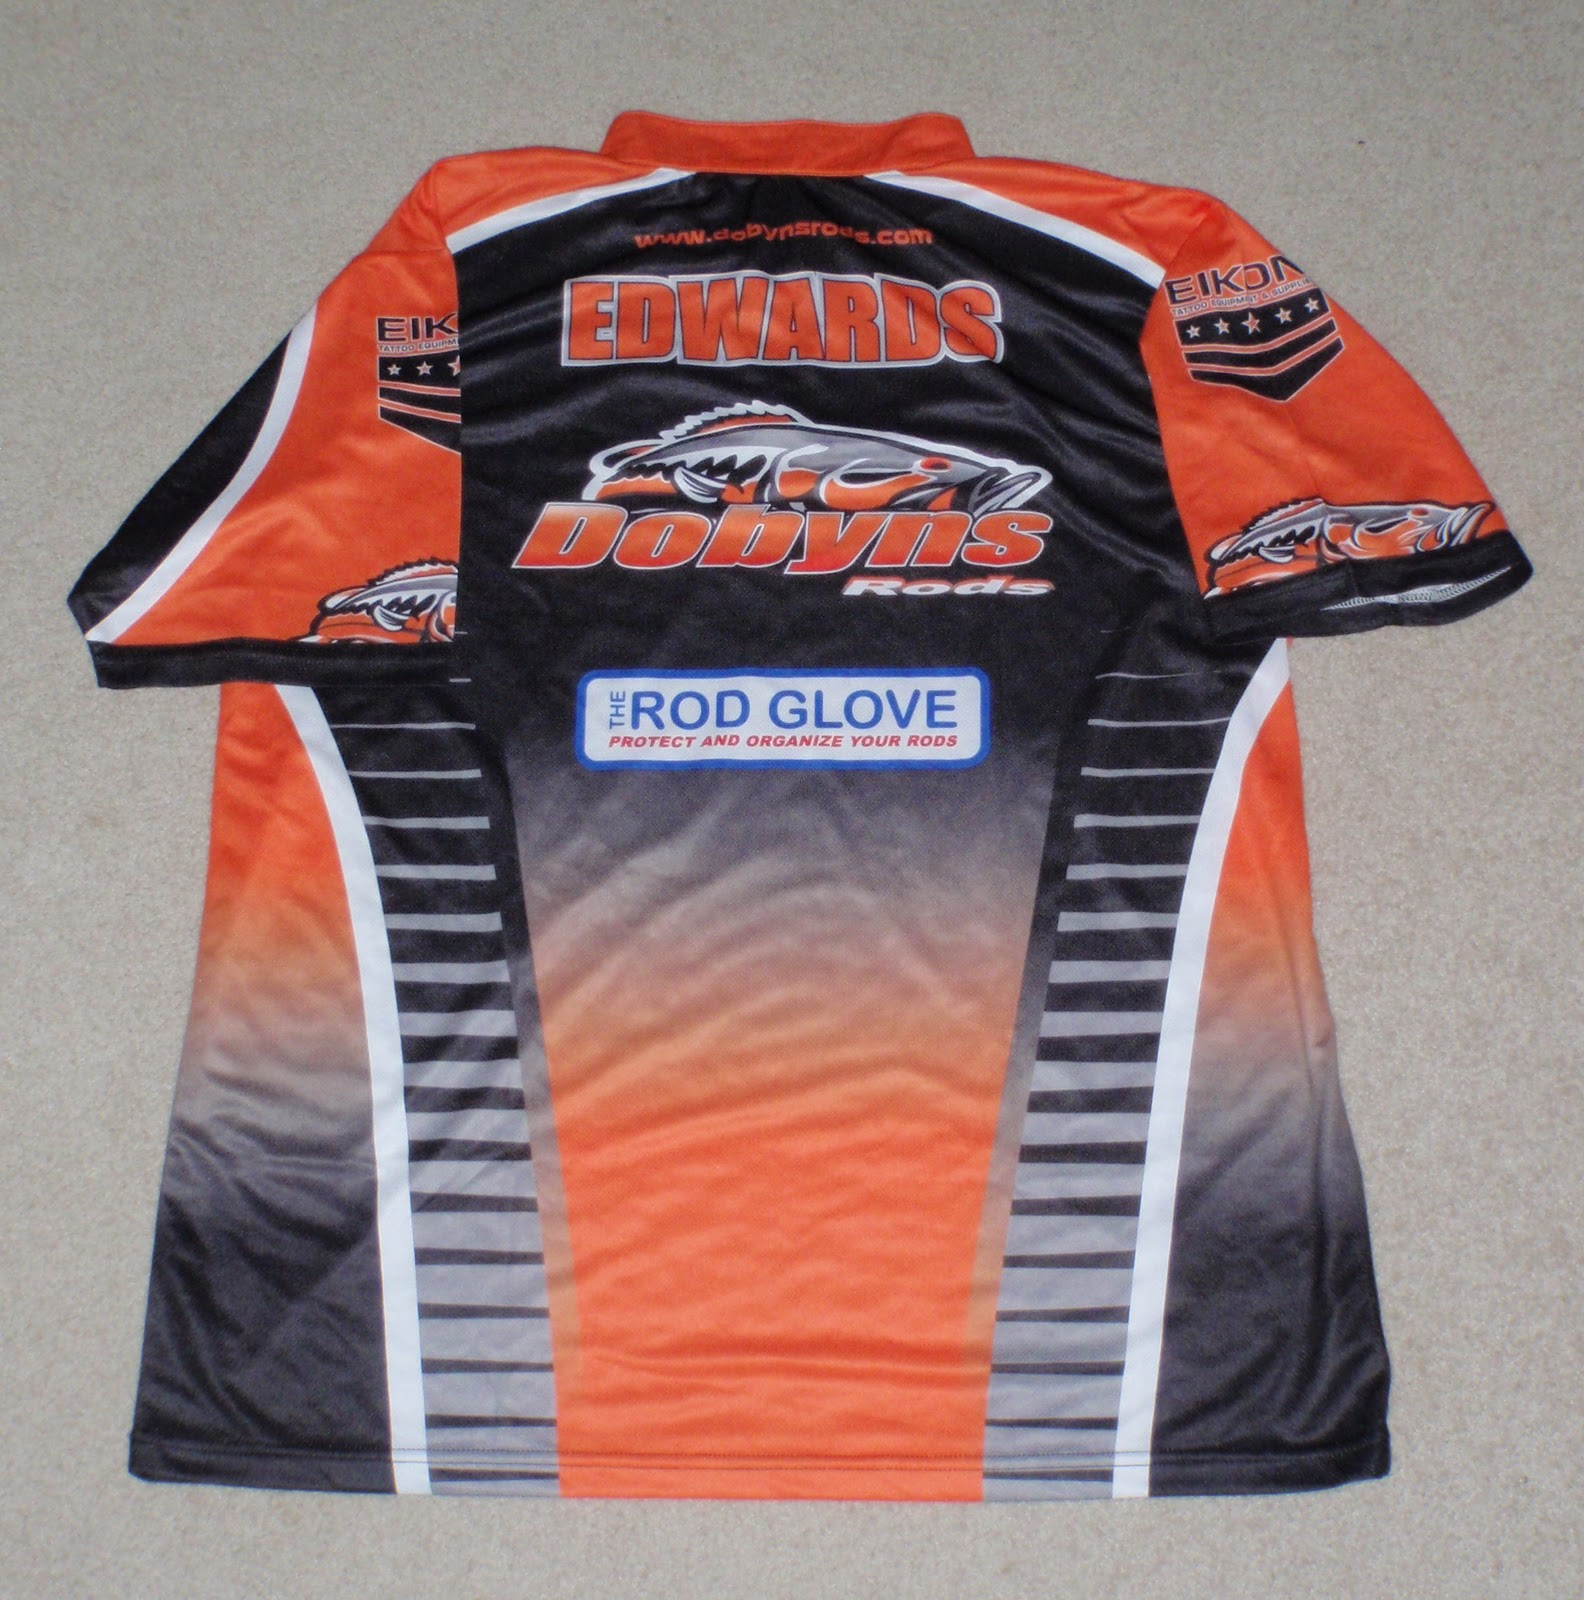 Bass junkies fishing addiction christmas comes early for Rayjus fishing jerseys